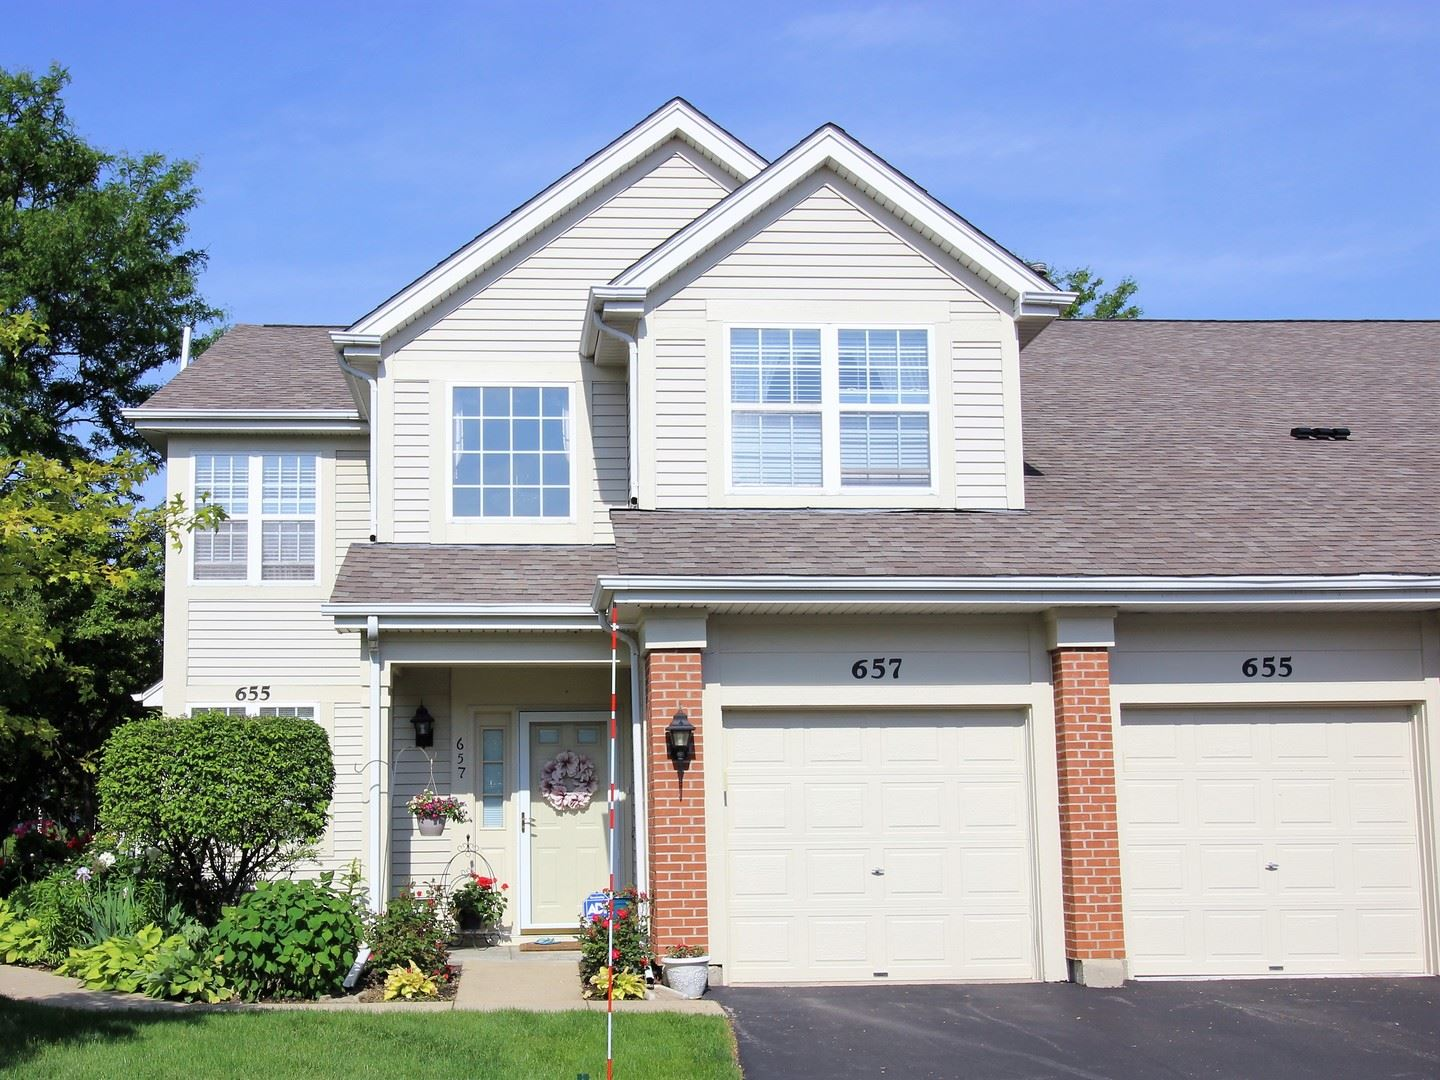 655 Mulberry Drive #655, Prospect Heights, IL 60070 - #: 10735908